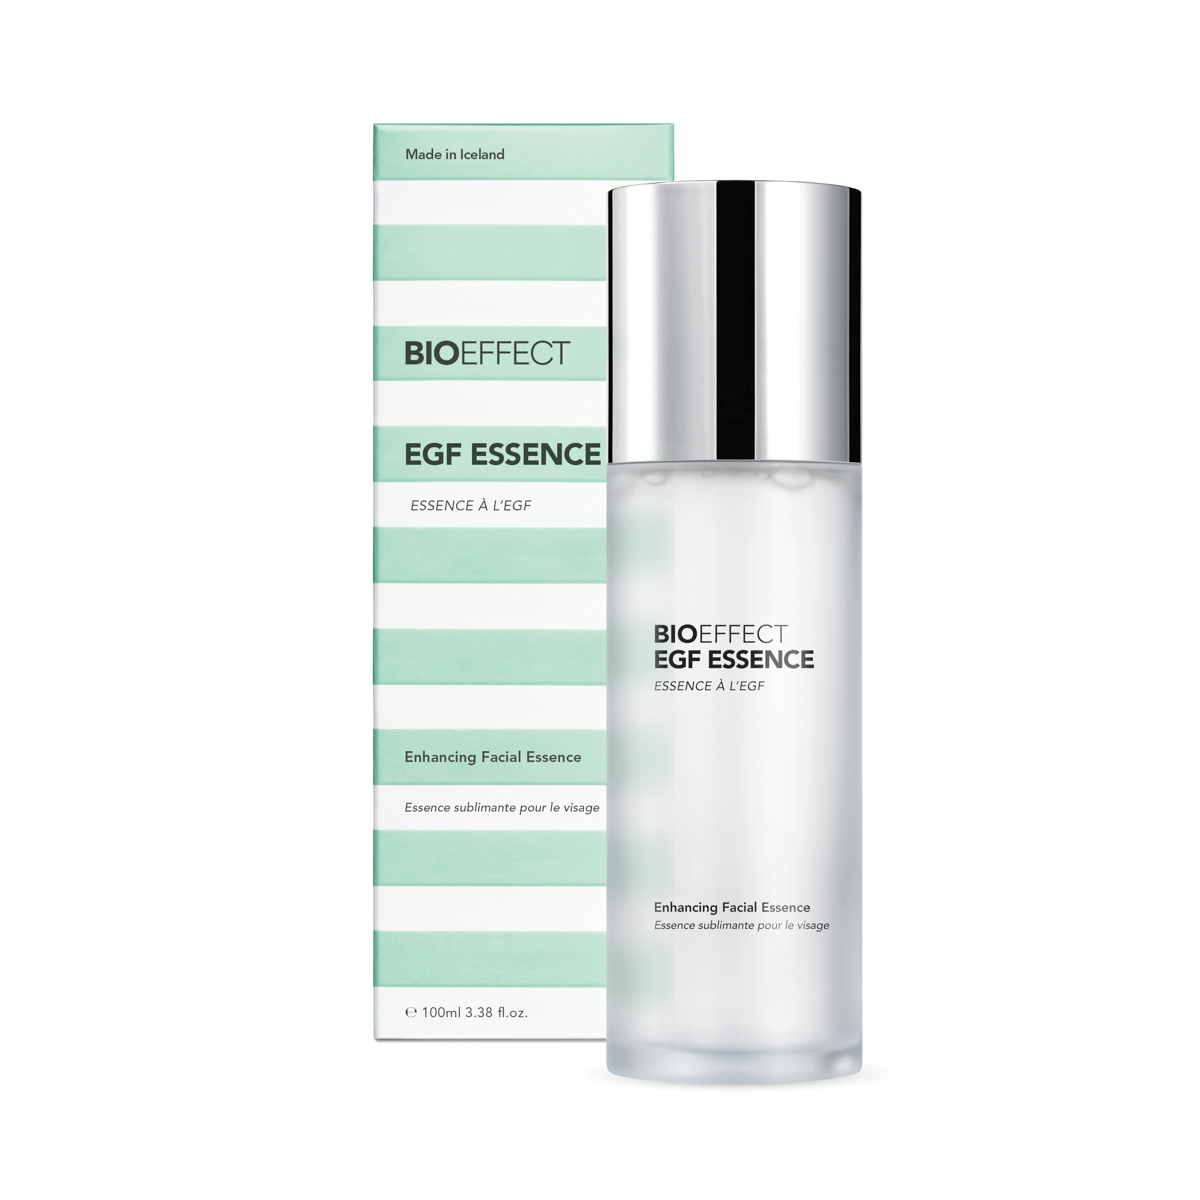 EGF Essence von Bioeffect